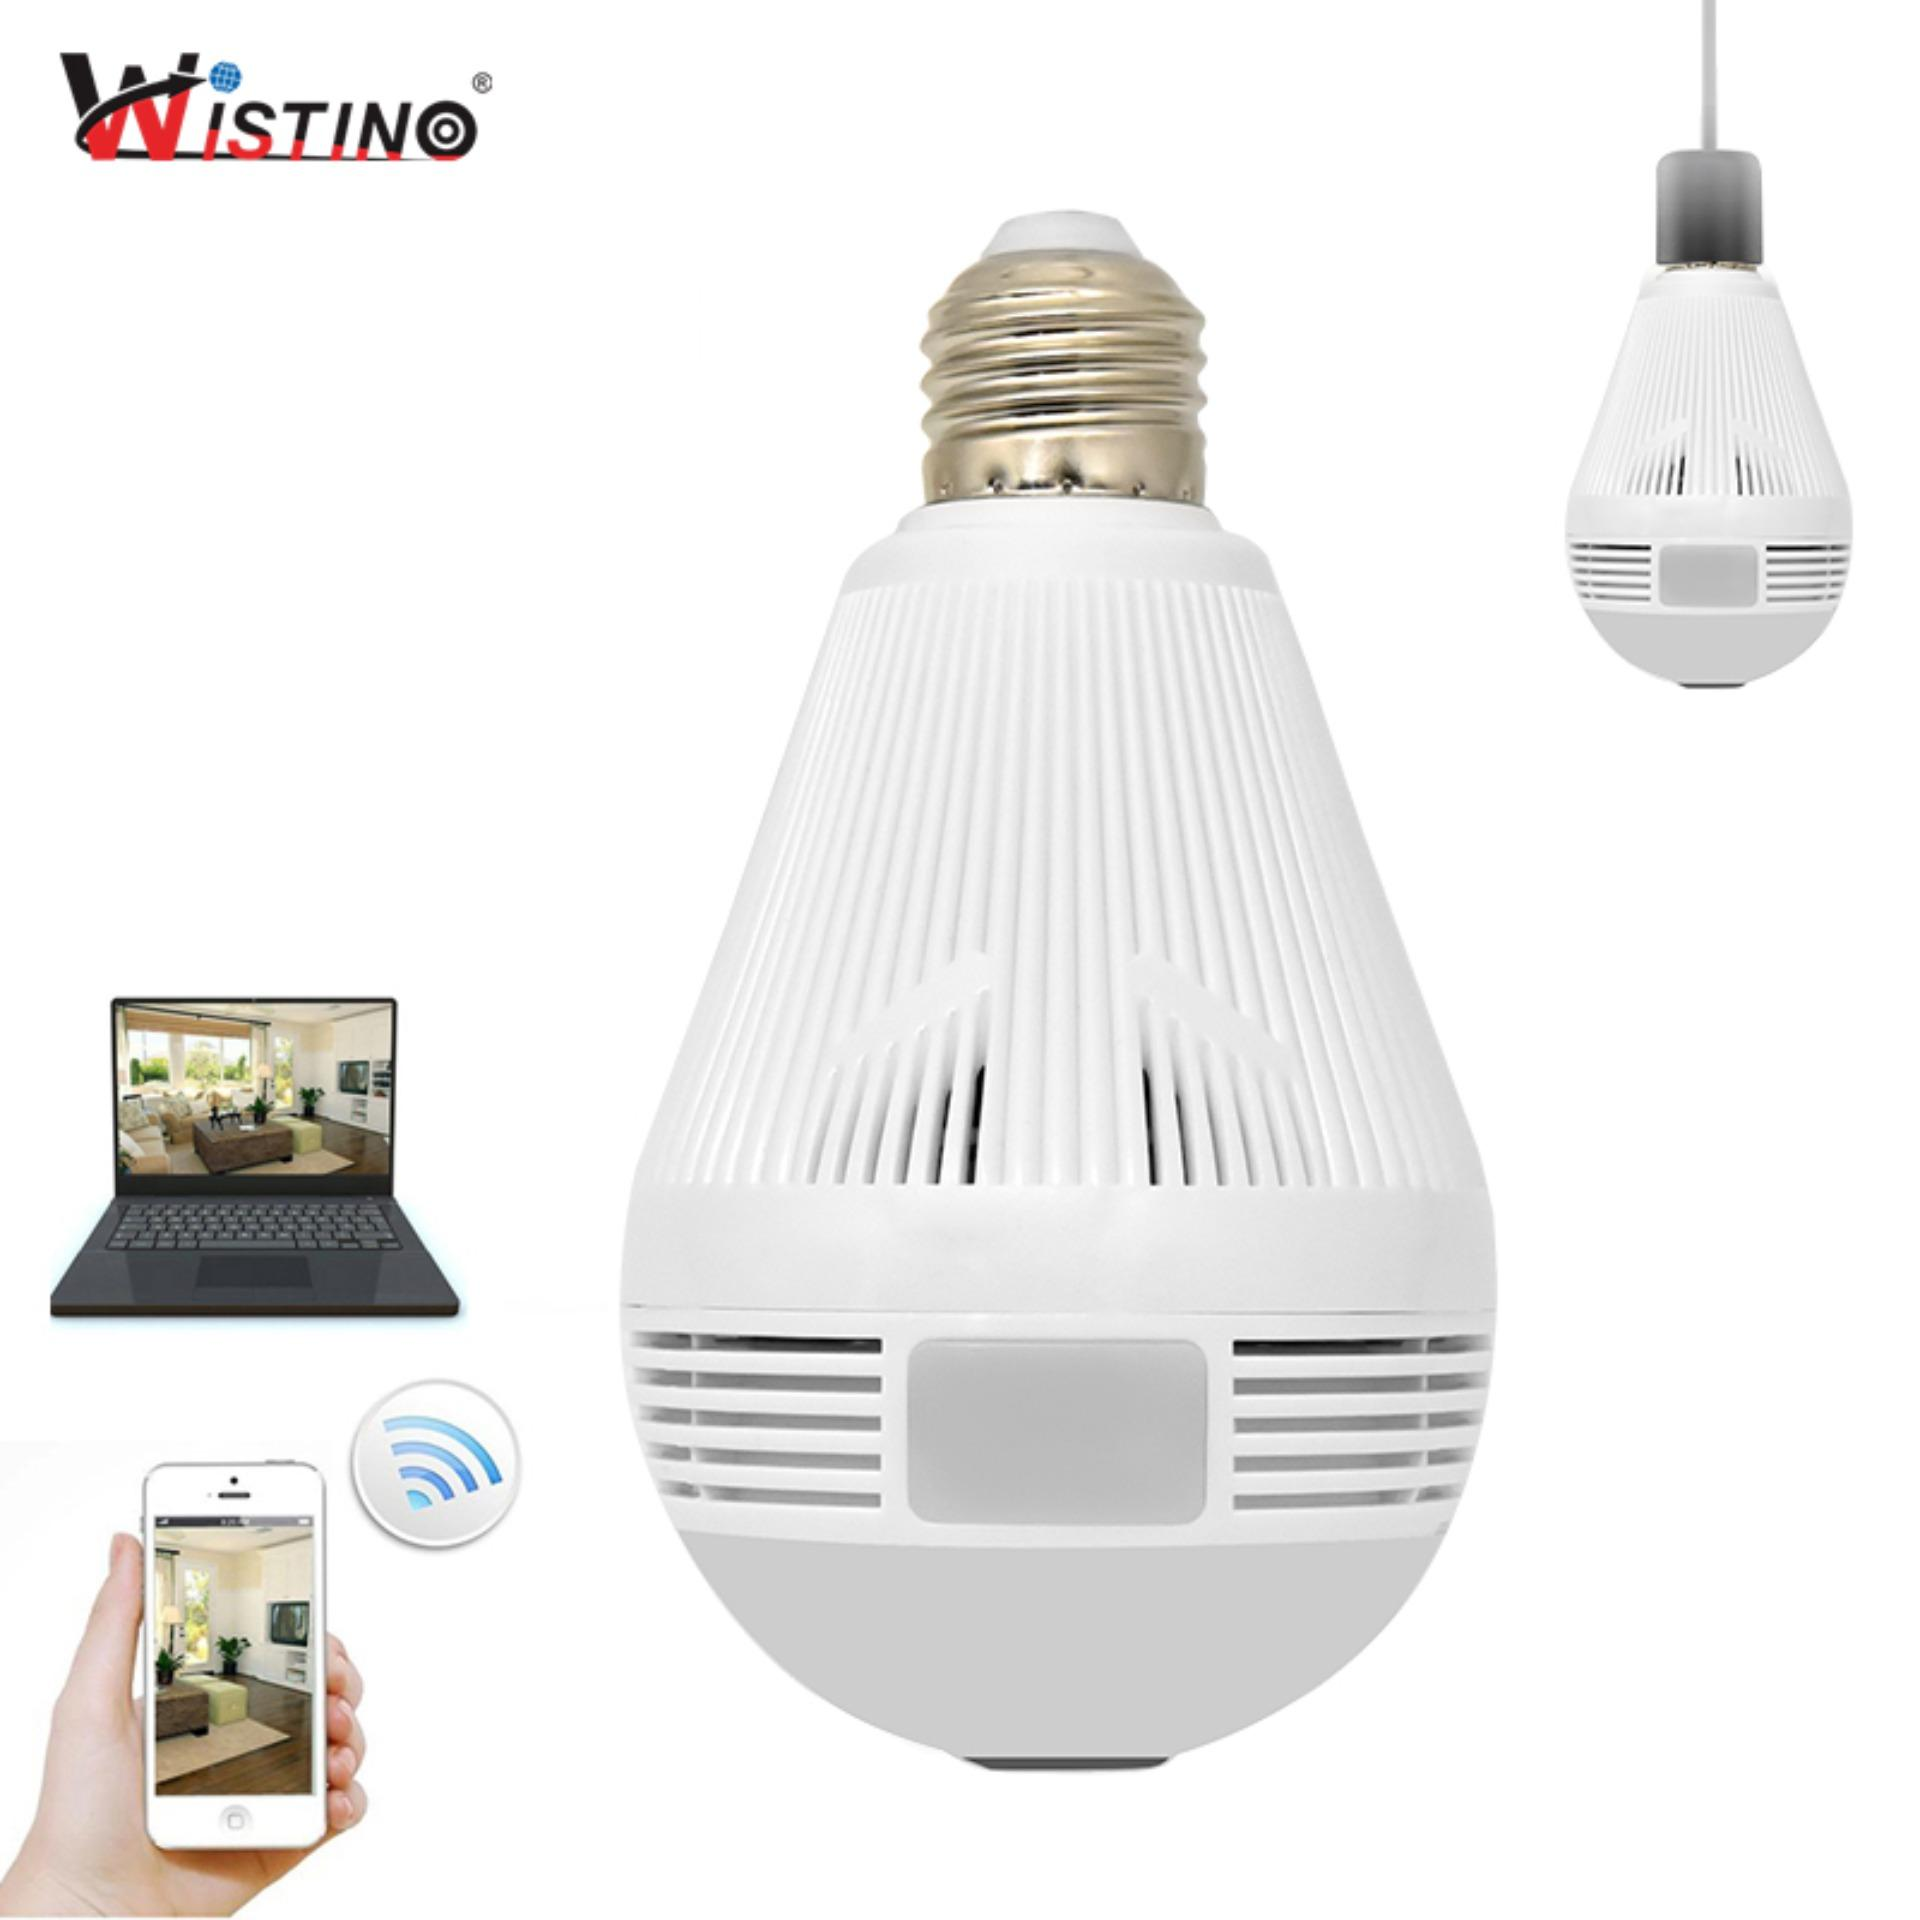 Diskon Wistino Cctv 960 P Wireless Ip Kamera Bulb Vr Panoramic Camera Light Wifi Fisheye 360 Derajat Home Surveillance Security Monitor Xmeye Intl Akhir Tahun